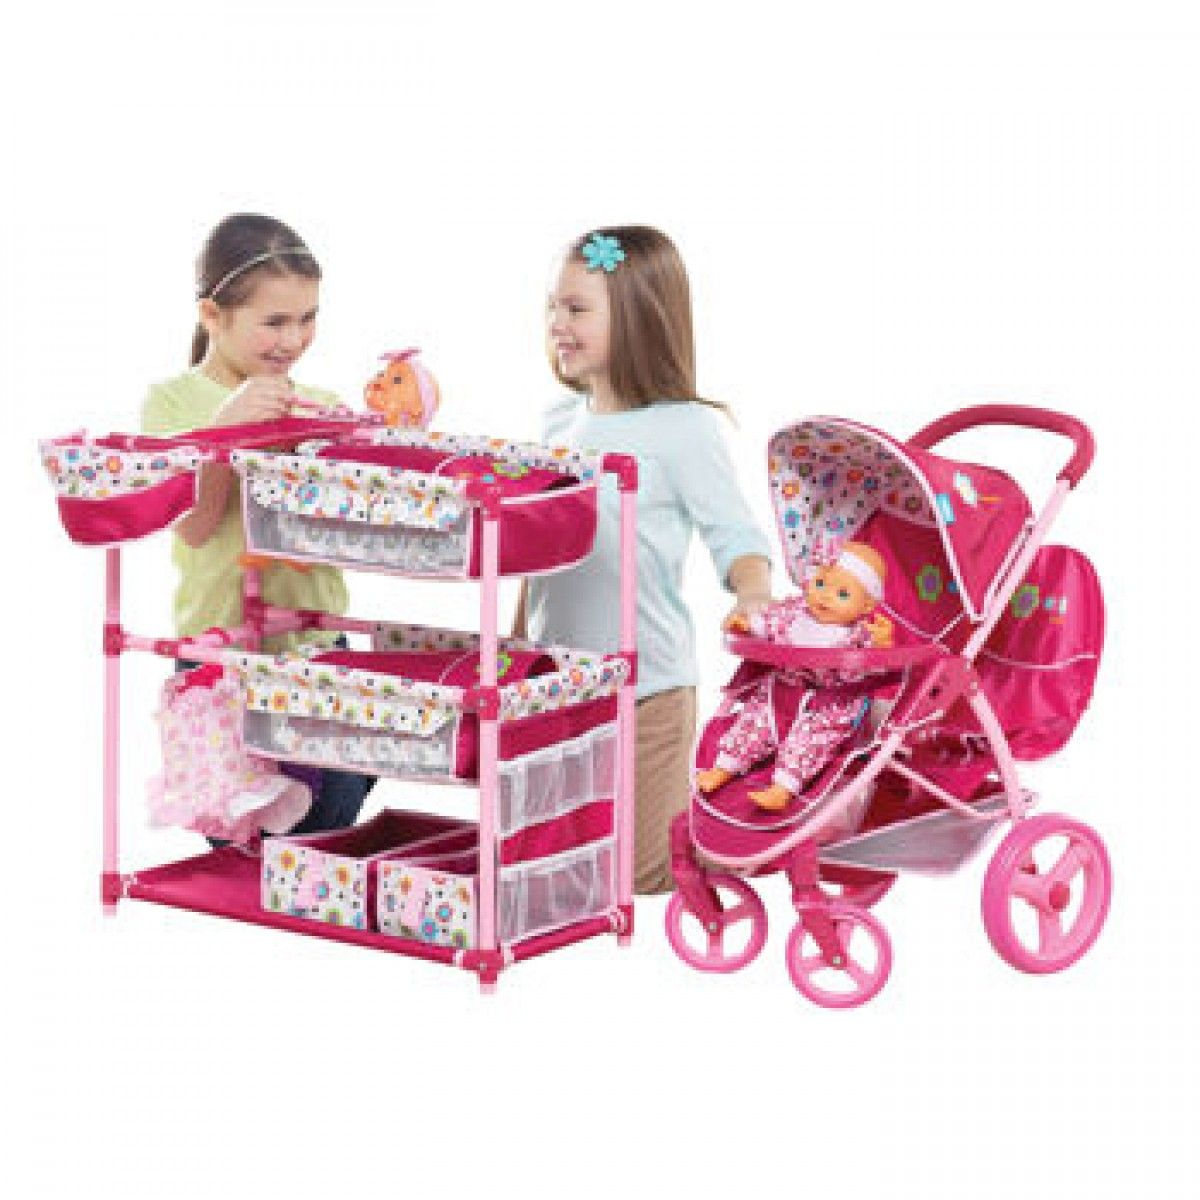 Malibu Doll Stroller Amp Activity Center Playset 34 99